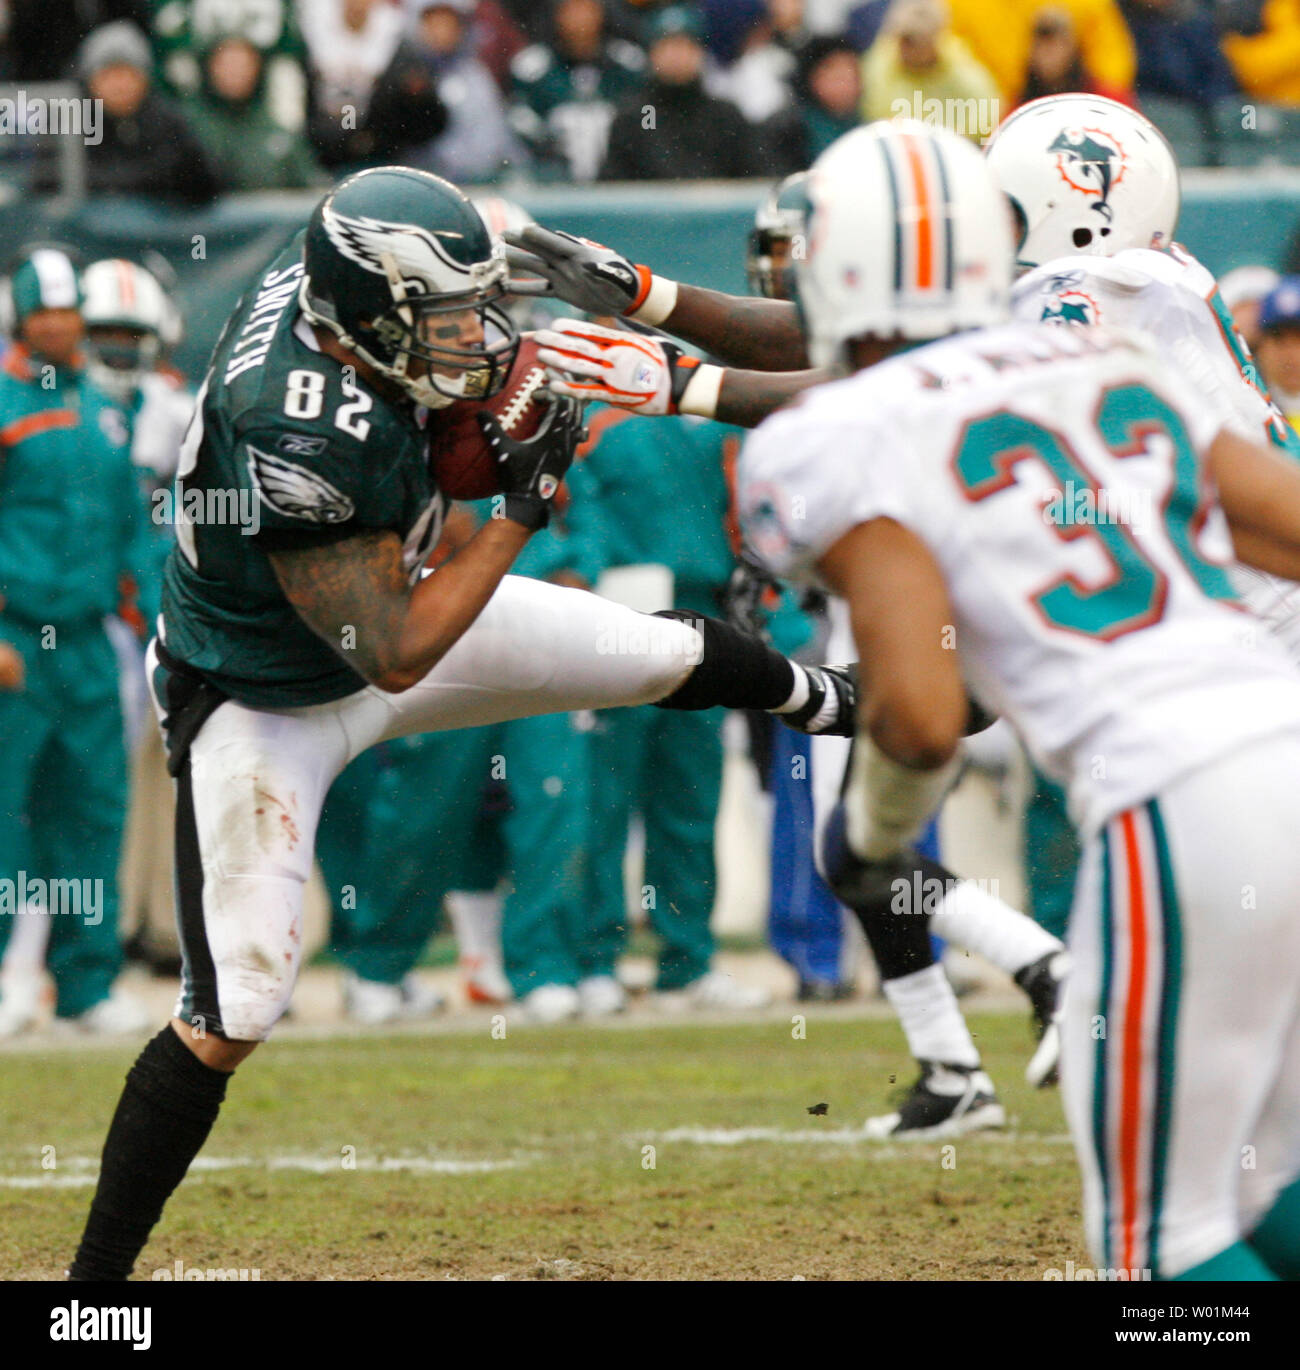 Philadelphia Eagles tight end L. J. Smith (82) prepares to be hit by Miami Dolphins Jay Porter (hidden) and Jason Allen (32) after completing a pass from A. J. Feeley for a 28-yard gain on the Miami 24-yard line during second quarter Miami Dolphins-Philadelphia Eagles NFL football action  at Philadelphia's Lincoln Field October 18, 2006. Philadelphia defeated Miami 17-7.      (UPI Photo/John Anderson) - Stock Image